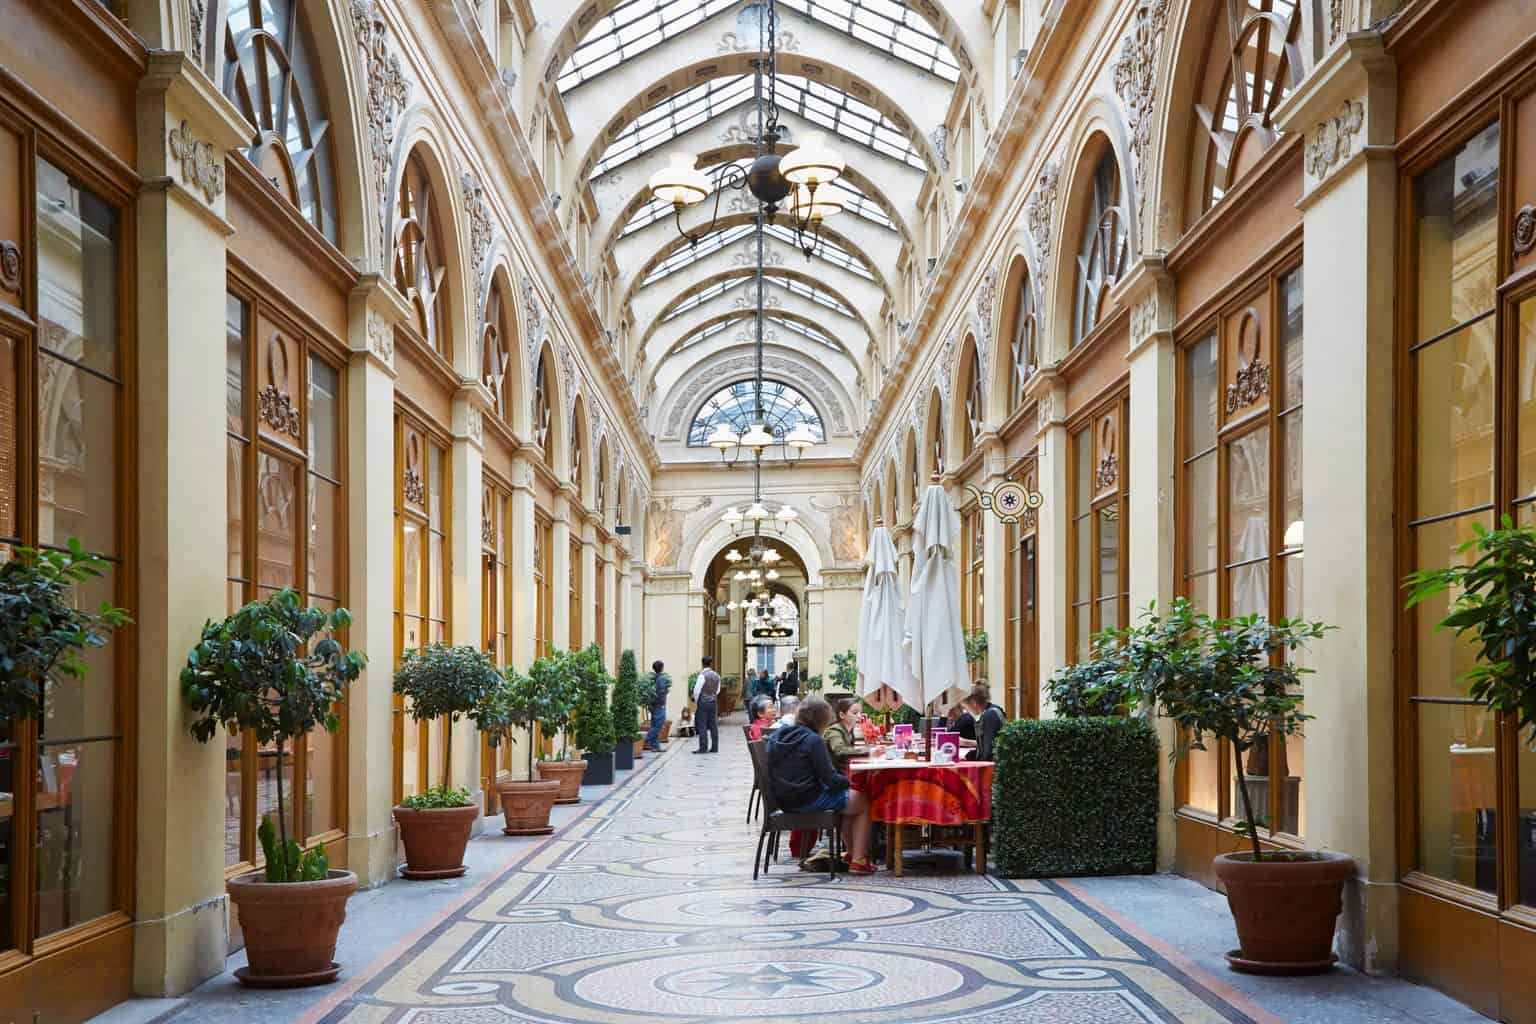 One of the many unusual things to do in Paris is to visit Gallerie Vivienne, one of the many beautiful covered passageways in Paris. Gallerie Vivienne is one of the many beautiful covered passageways in Paris.